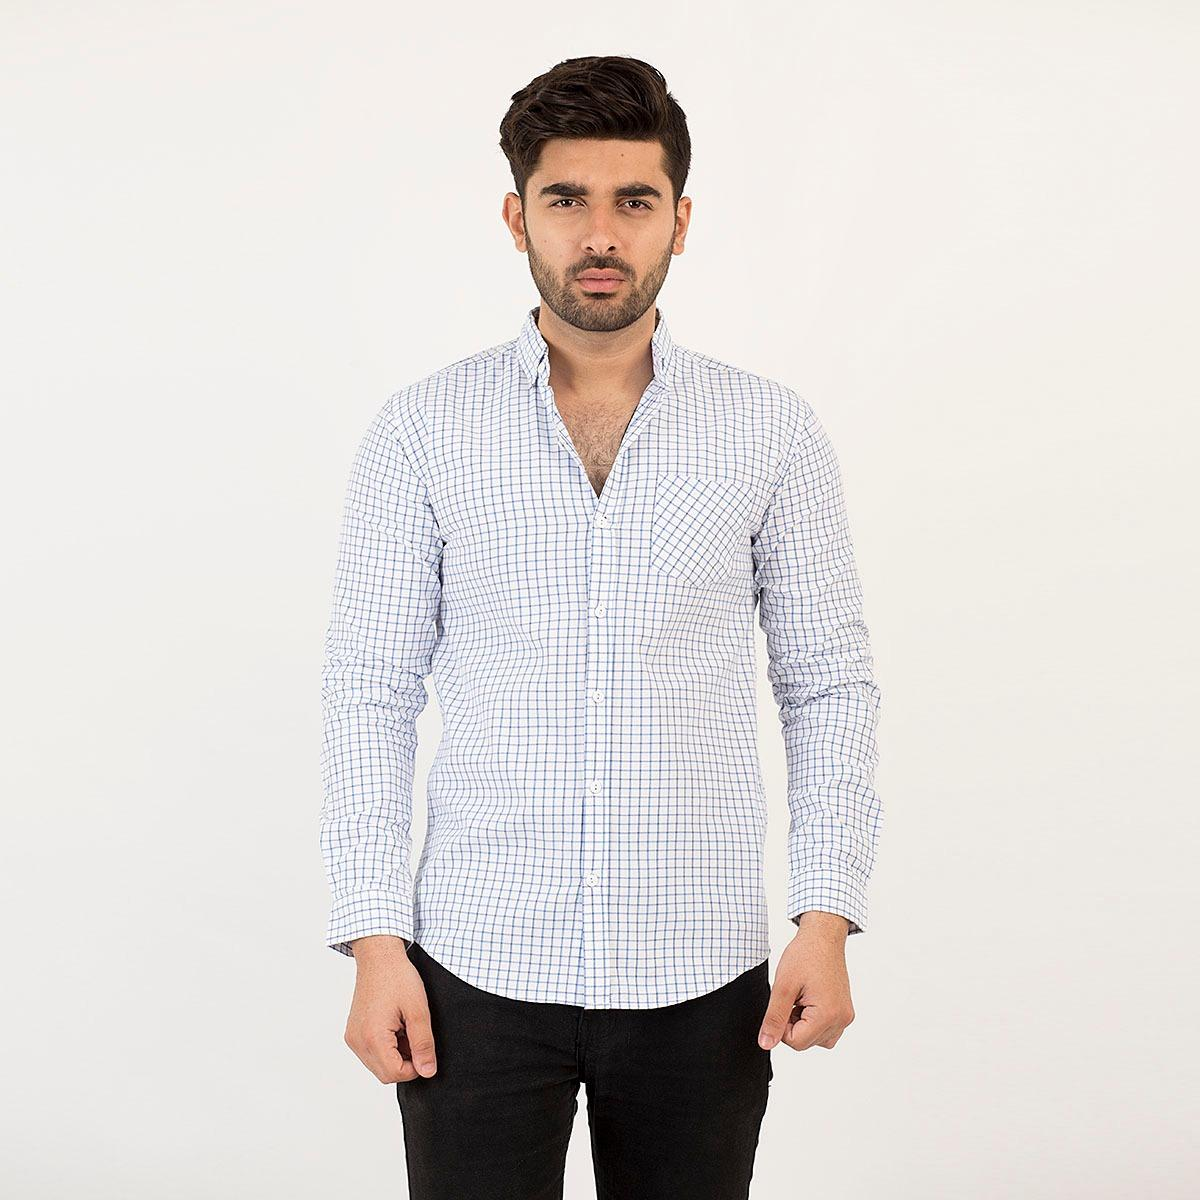 49171922 WOLF Casual Slim Fit Cotton Long Sleeve Shirt For Men Fashion - 90